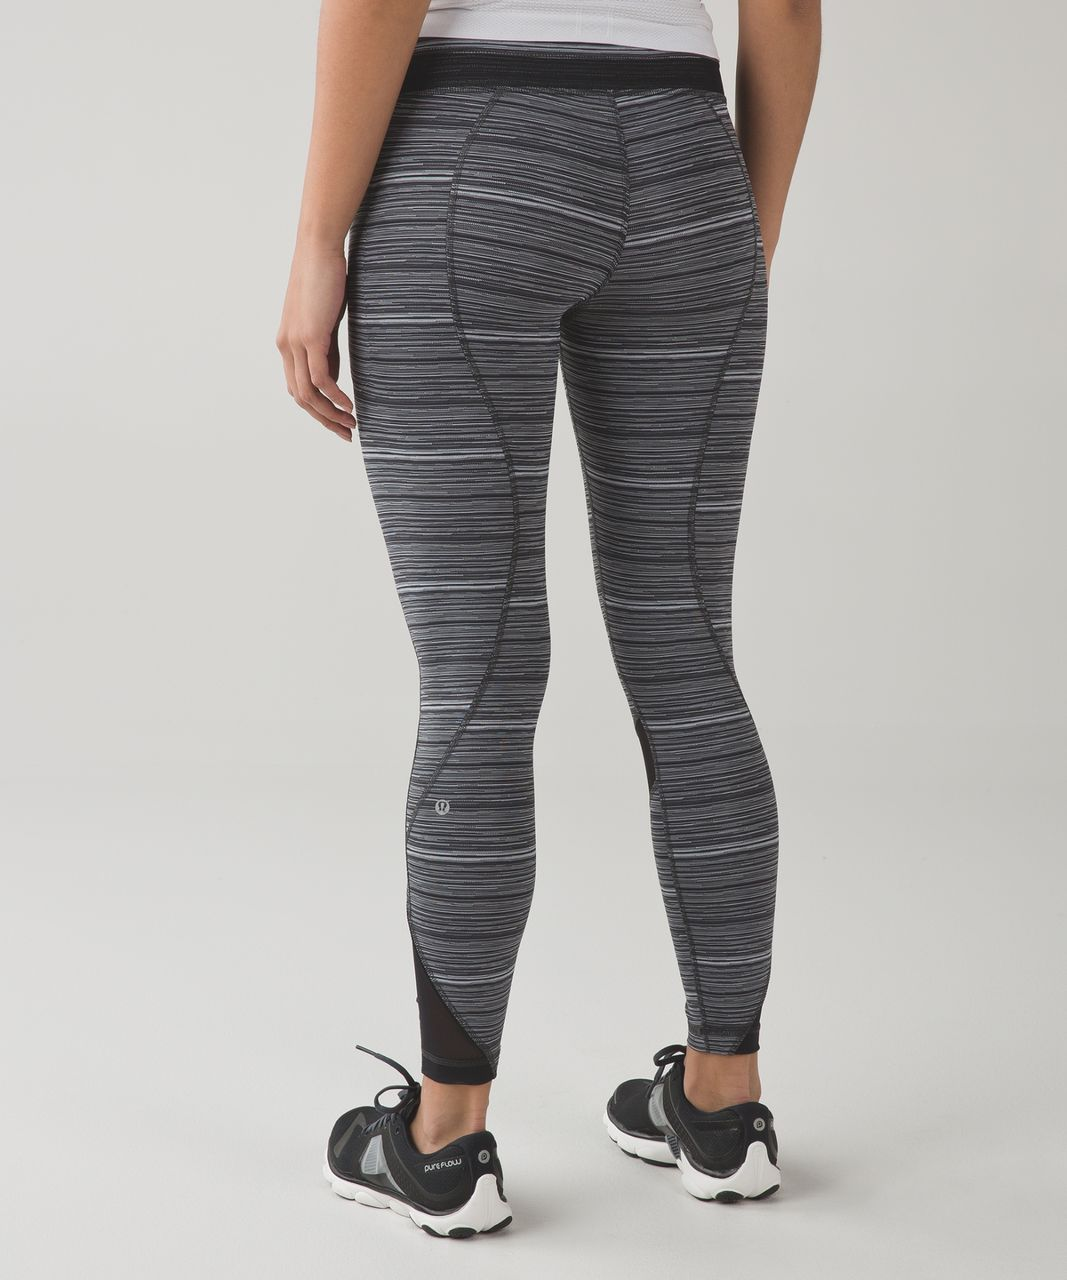 Lululemon Inspire Tight II (Mesh) - Cyber Black Deep Coal / Black